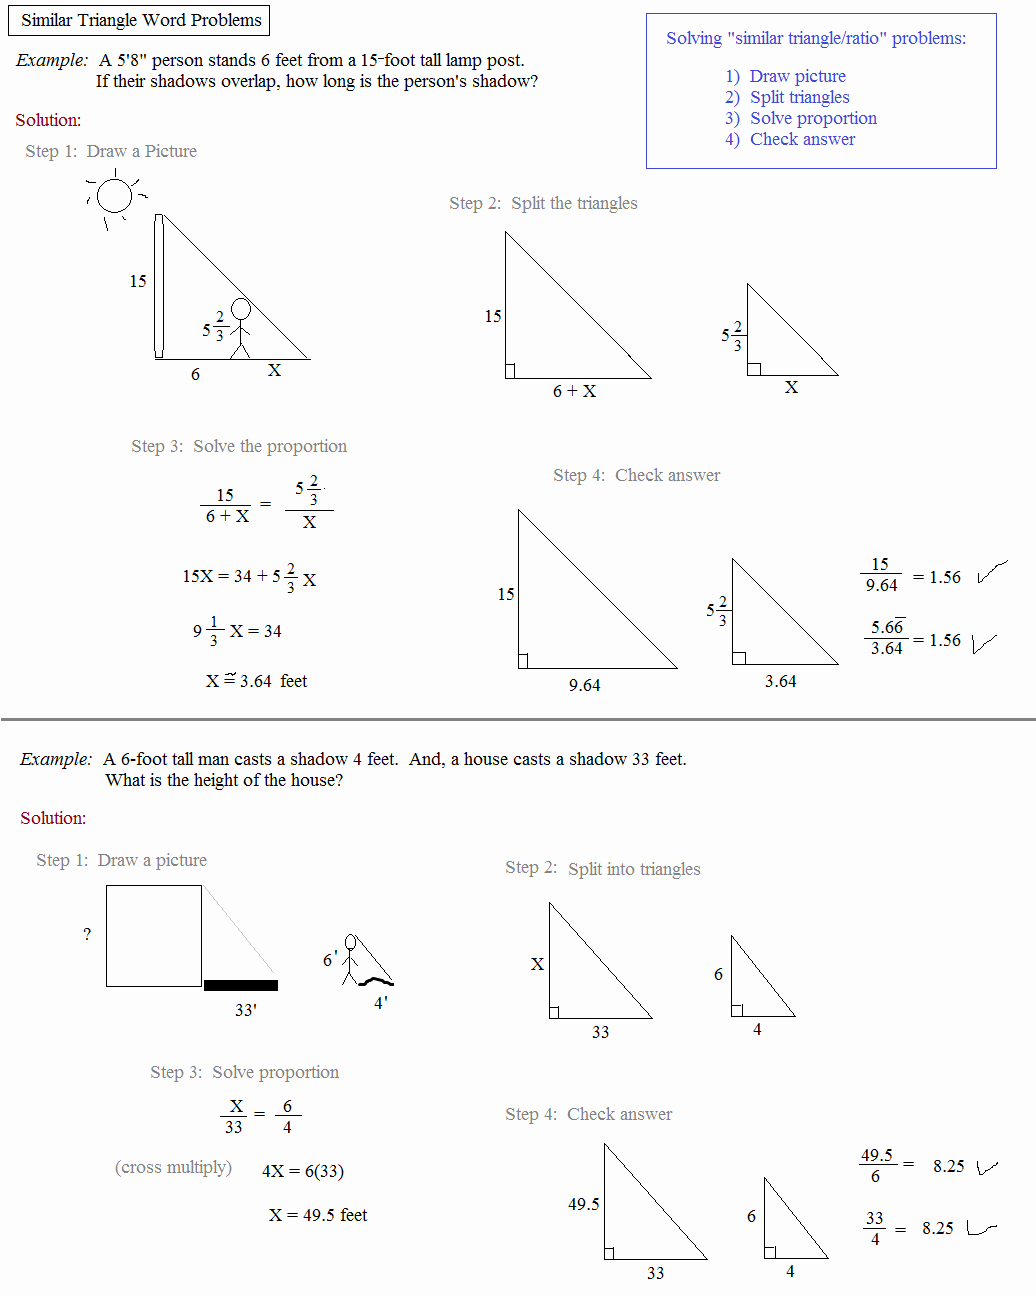 Solving Proportions Word Problems Worksheet Lovely Math Plane Similar Triangles & Ratios